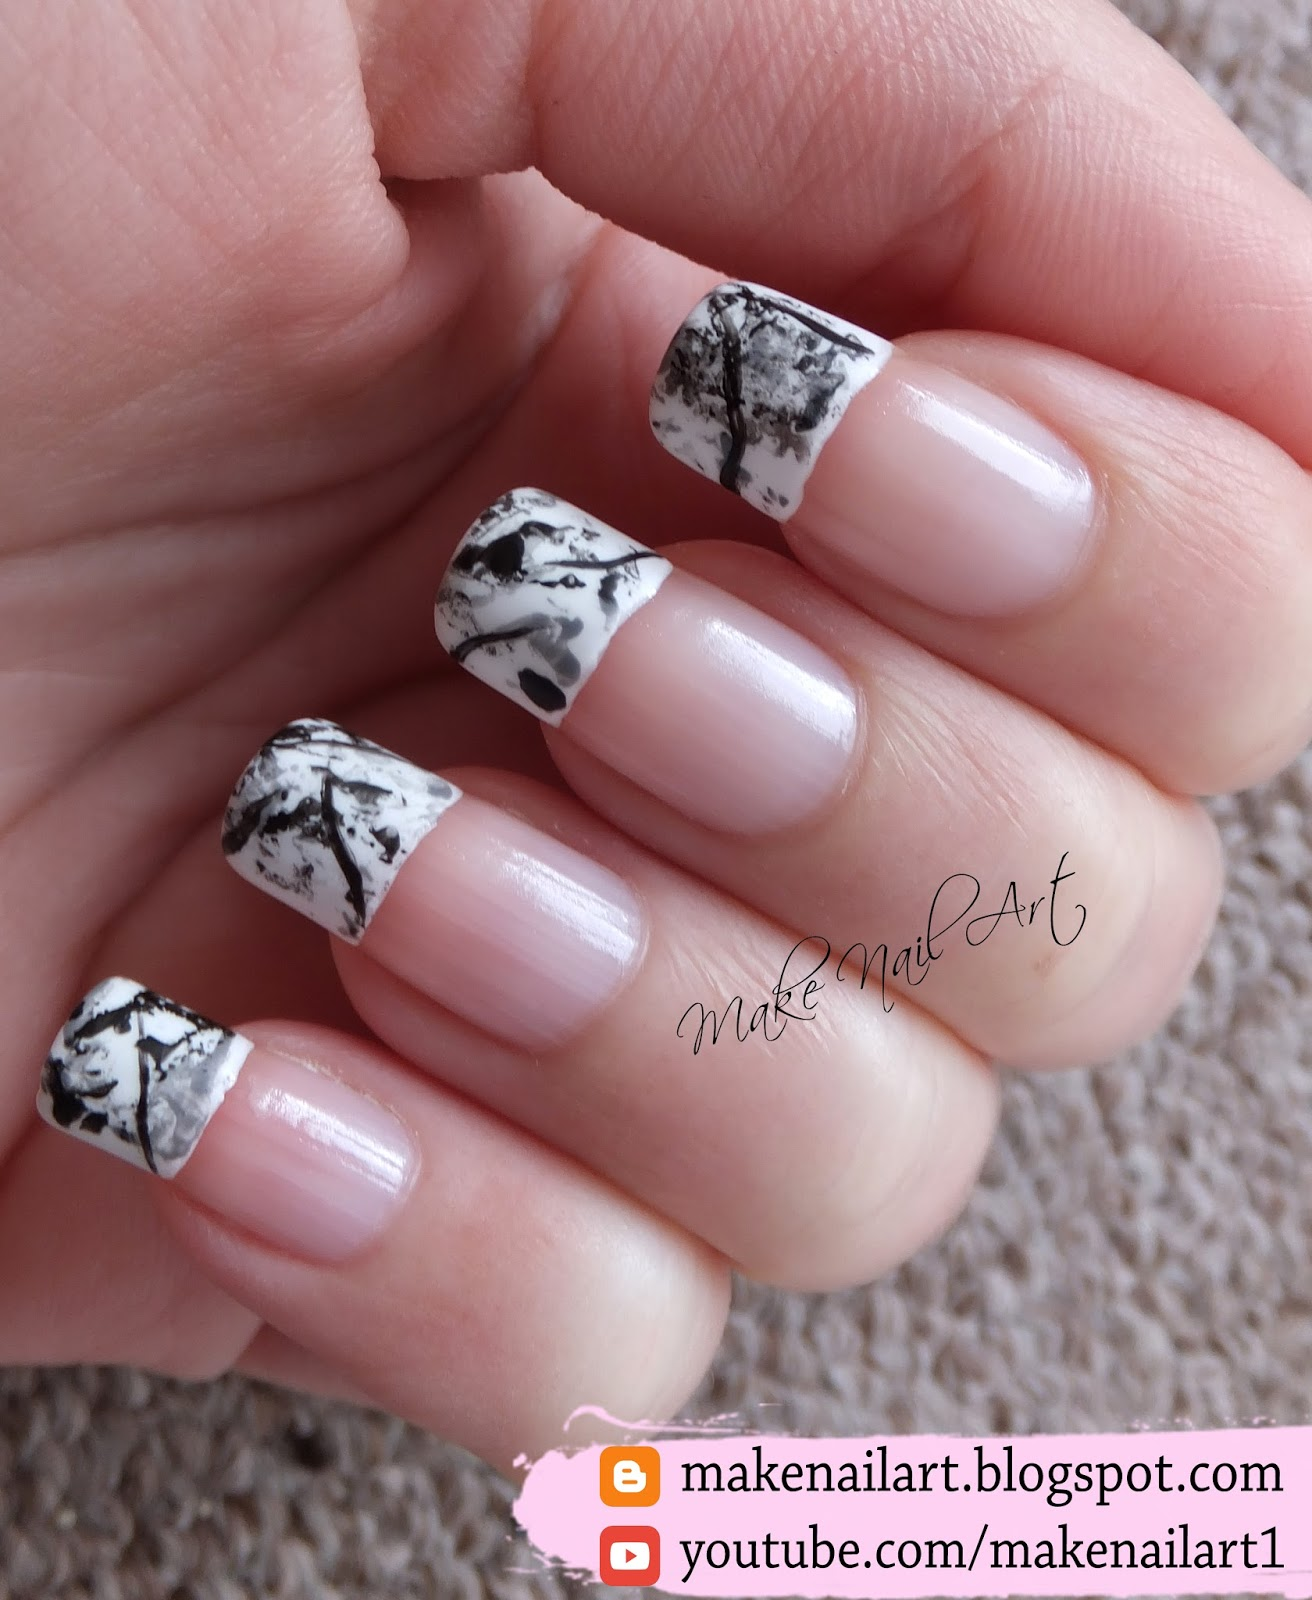 Make Nail Art: Stone Marble French Manicure Nail Art Design Tutorial